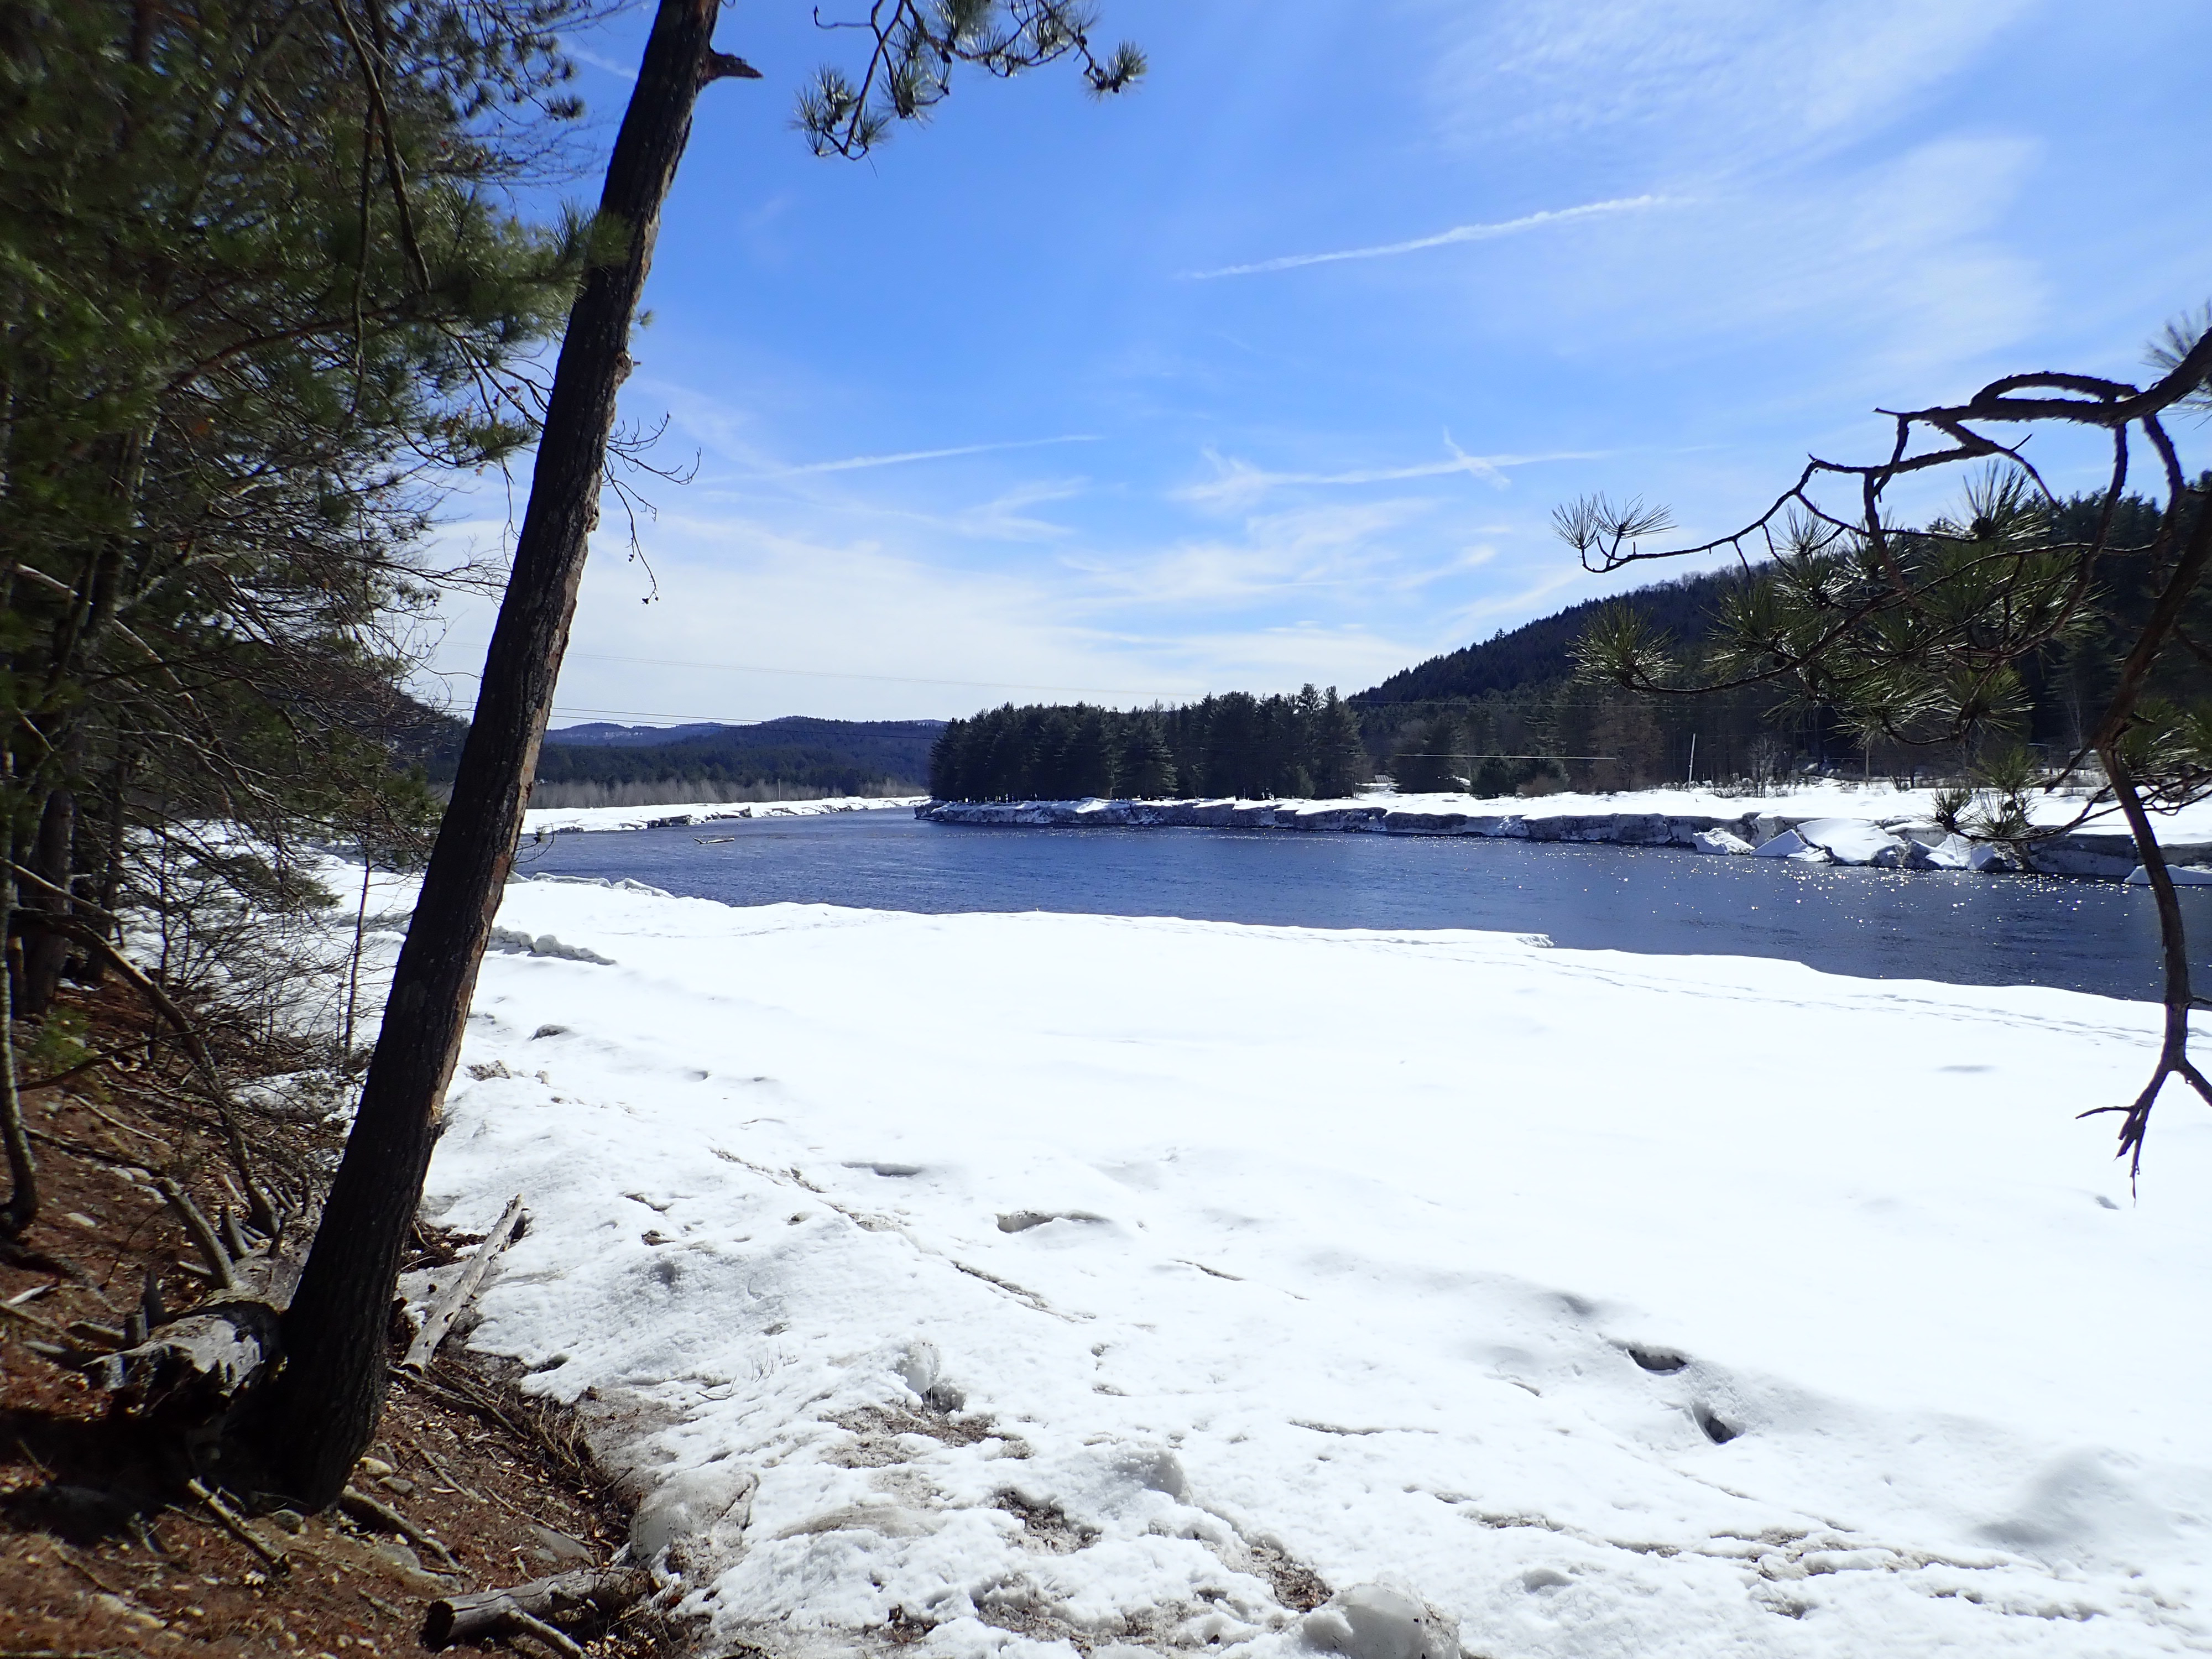 View of the Hudson River in winter from the Warren County Nature Trails